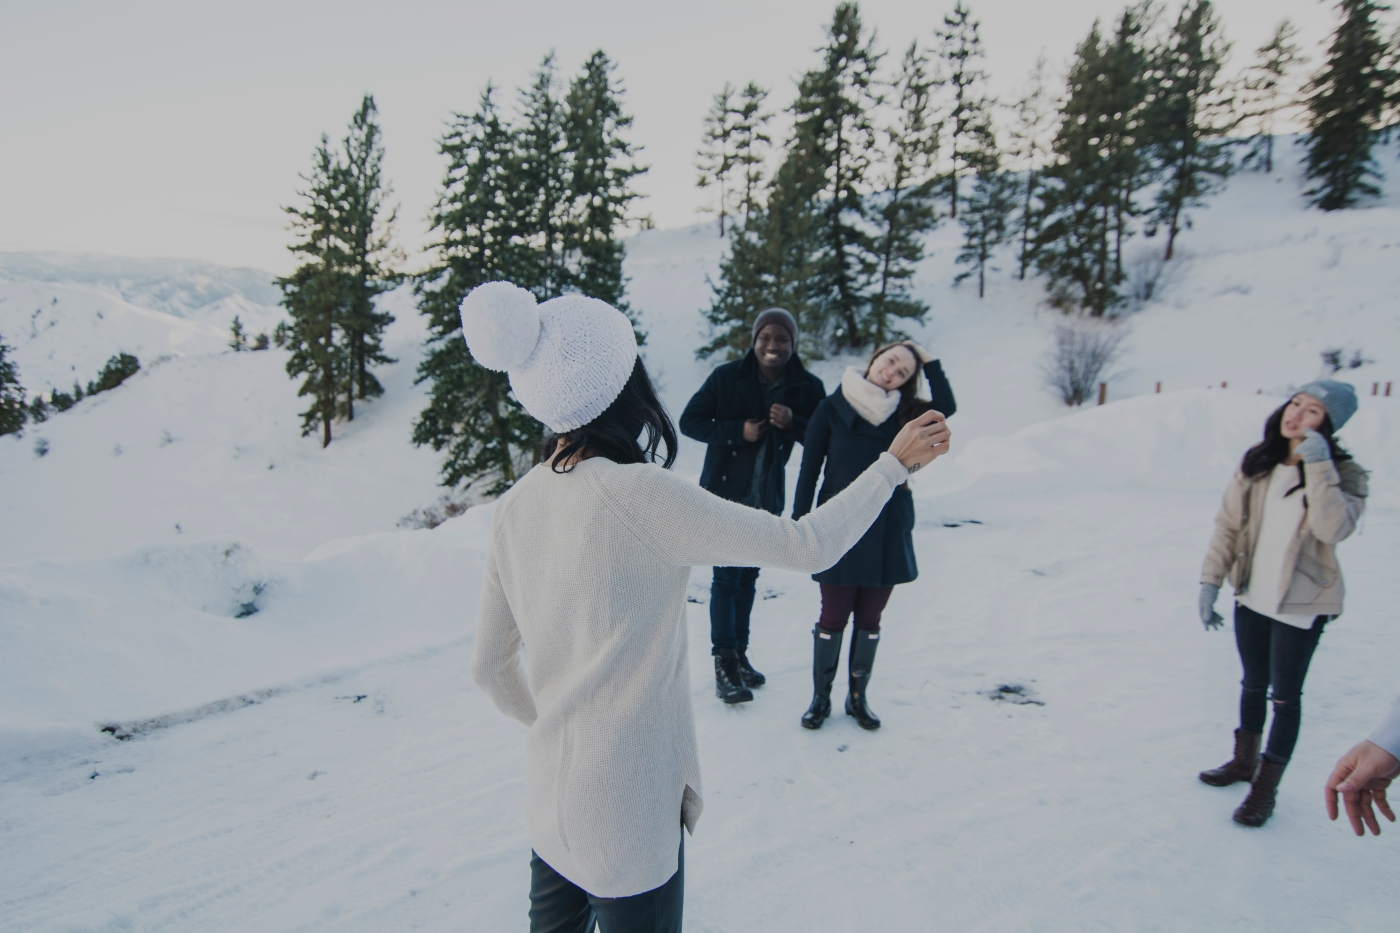 leavenworth_elopement_by_jane_speleers_photography_seattle_photographer_2017_winter_snow_joy_and_jason_rendezvous_ranch_cashmere_leavenworth_nahahum_canyon_all_rights_reservedjs7_0519